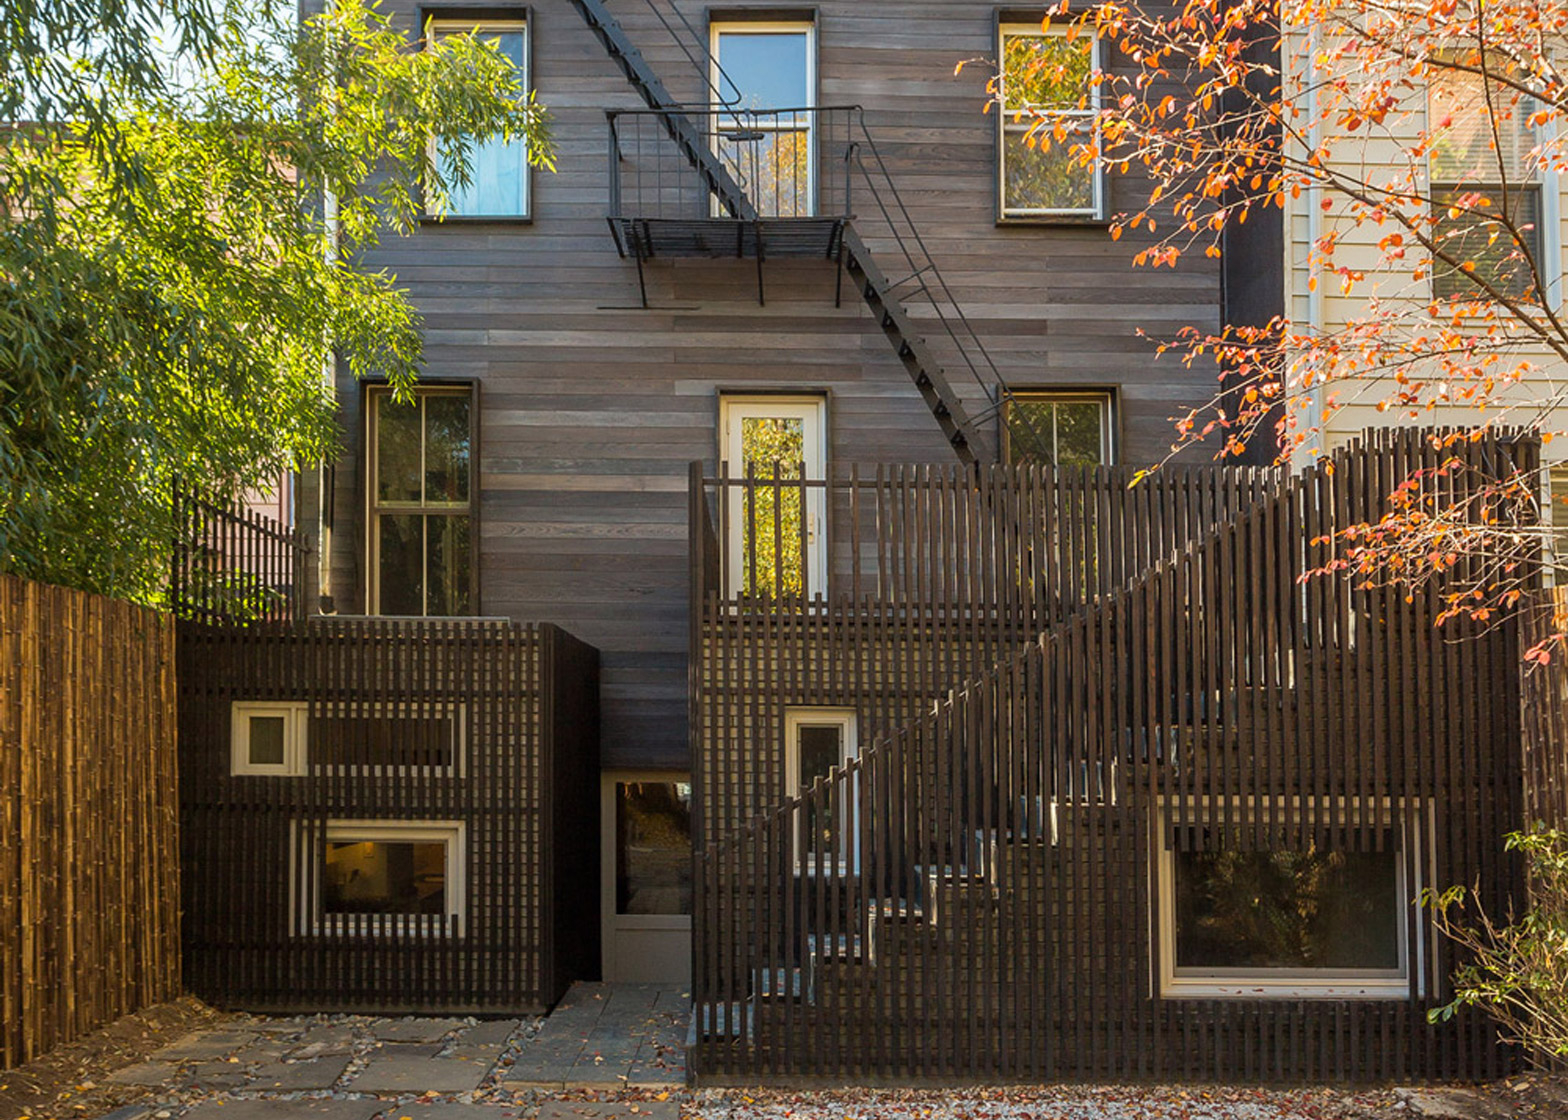 Blurring Boxes residential extension in Brooklyn, New York City, USA by Architensions. Photograph by Cameron Blaylock